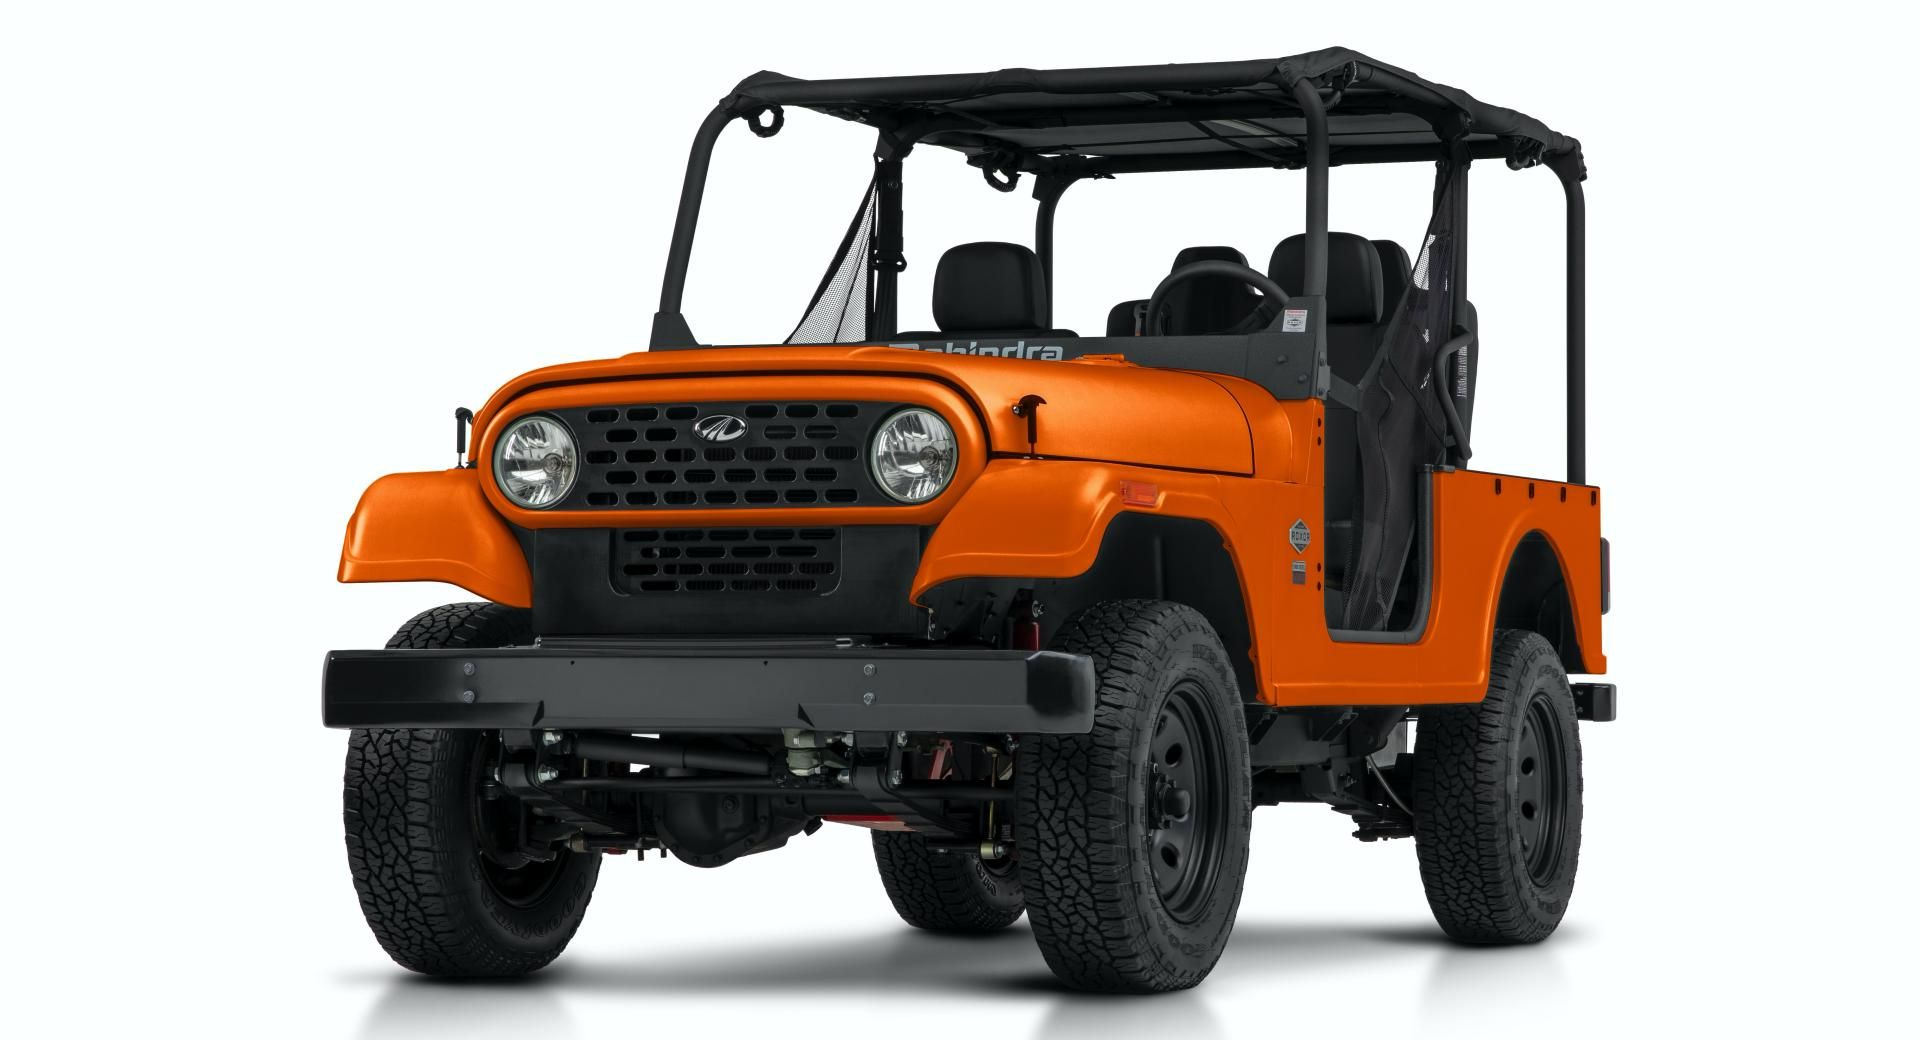 Mahindra Fixes 2020 Roxor After Jeep Lawsuit What Does It Look